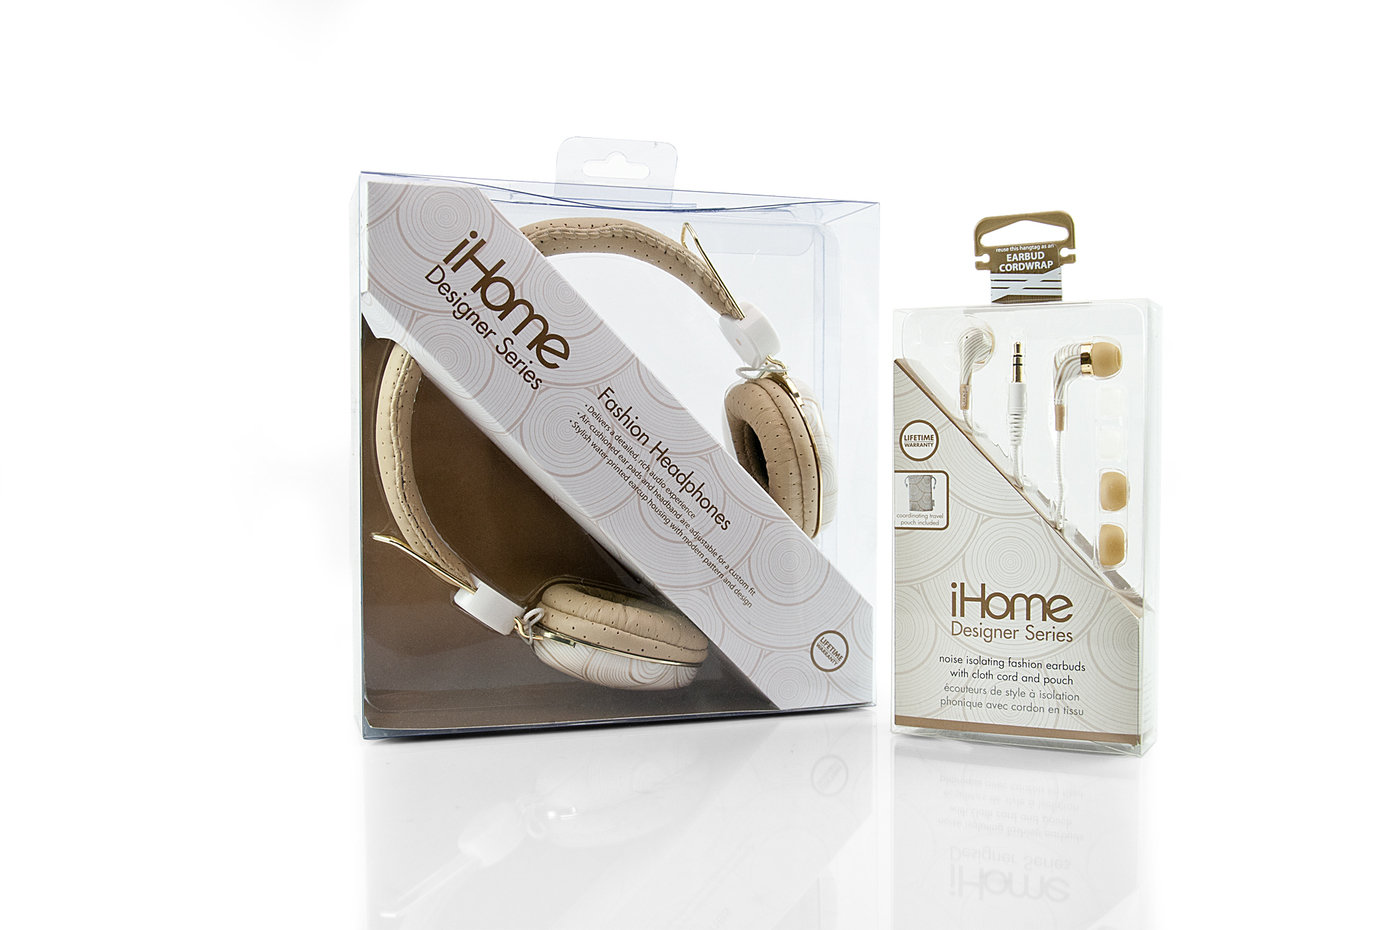 I Home Designer Series Headphones